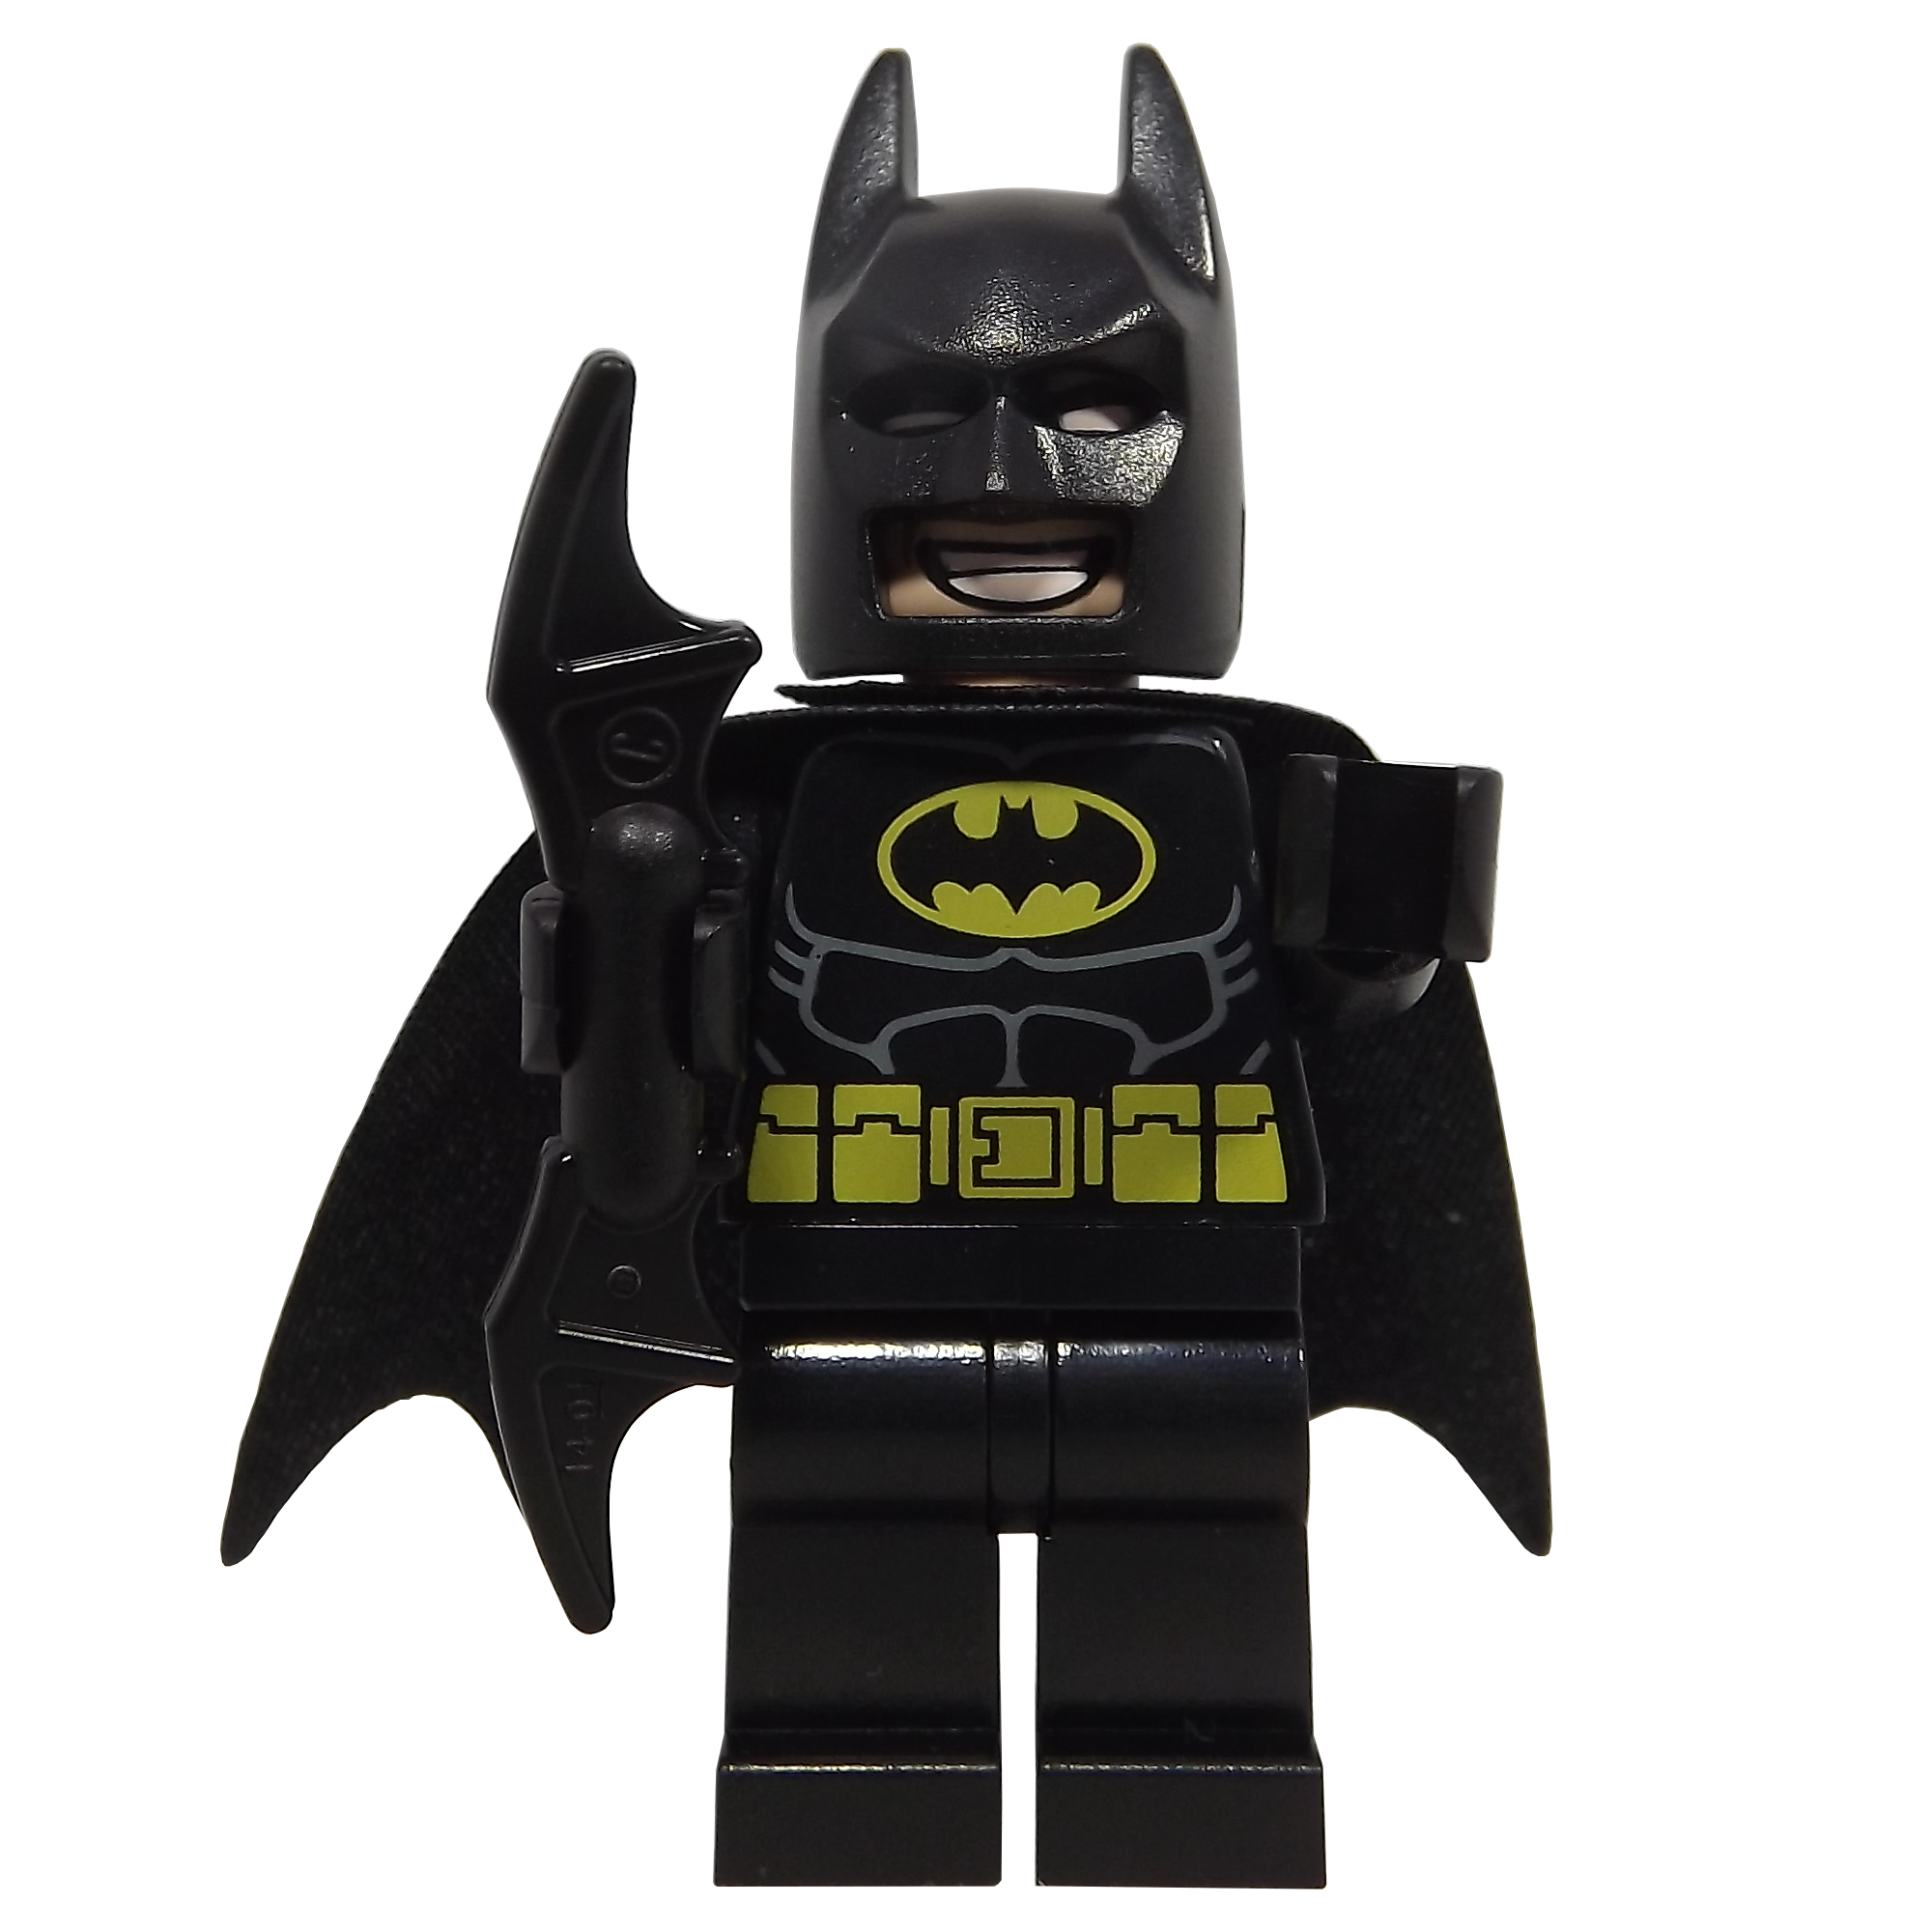 The minifigure store shop the lego movie batman the lego movie 70817